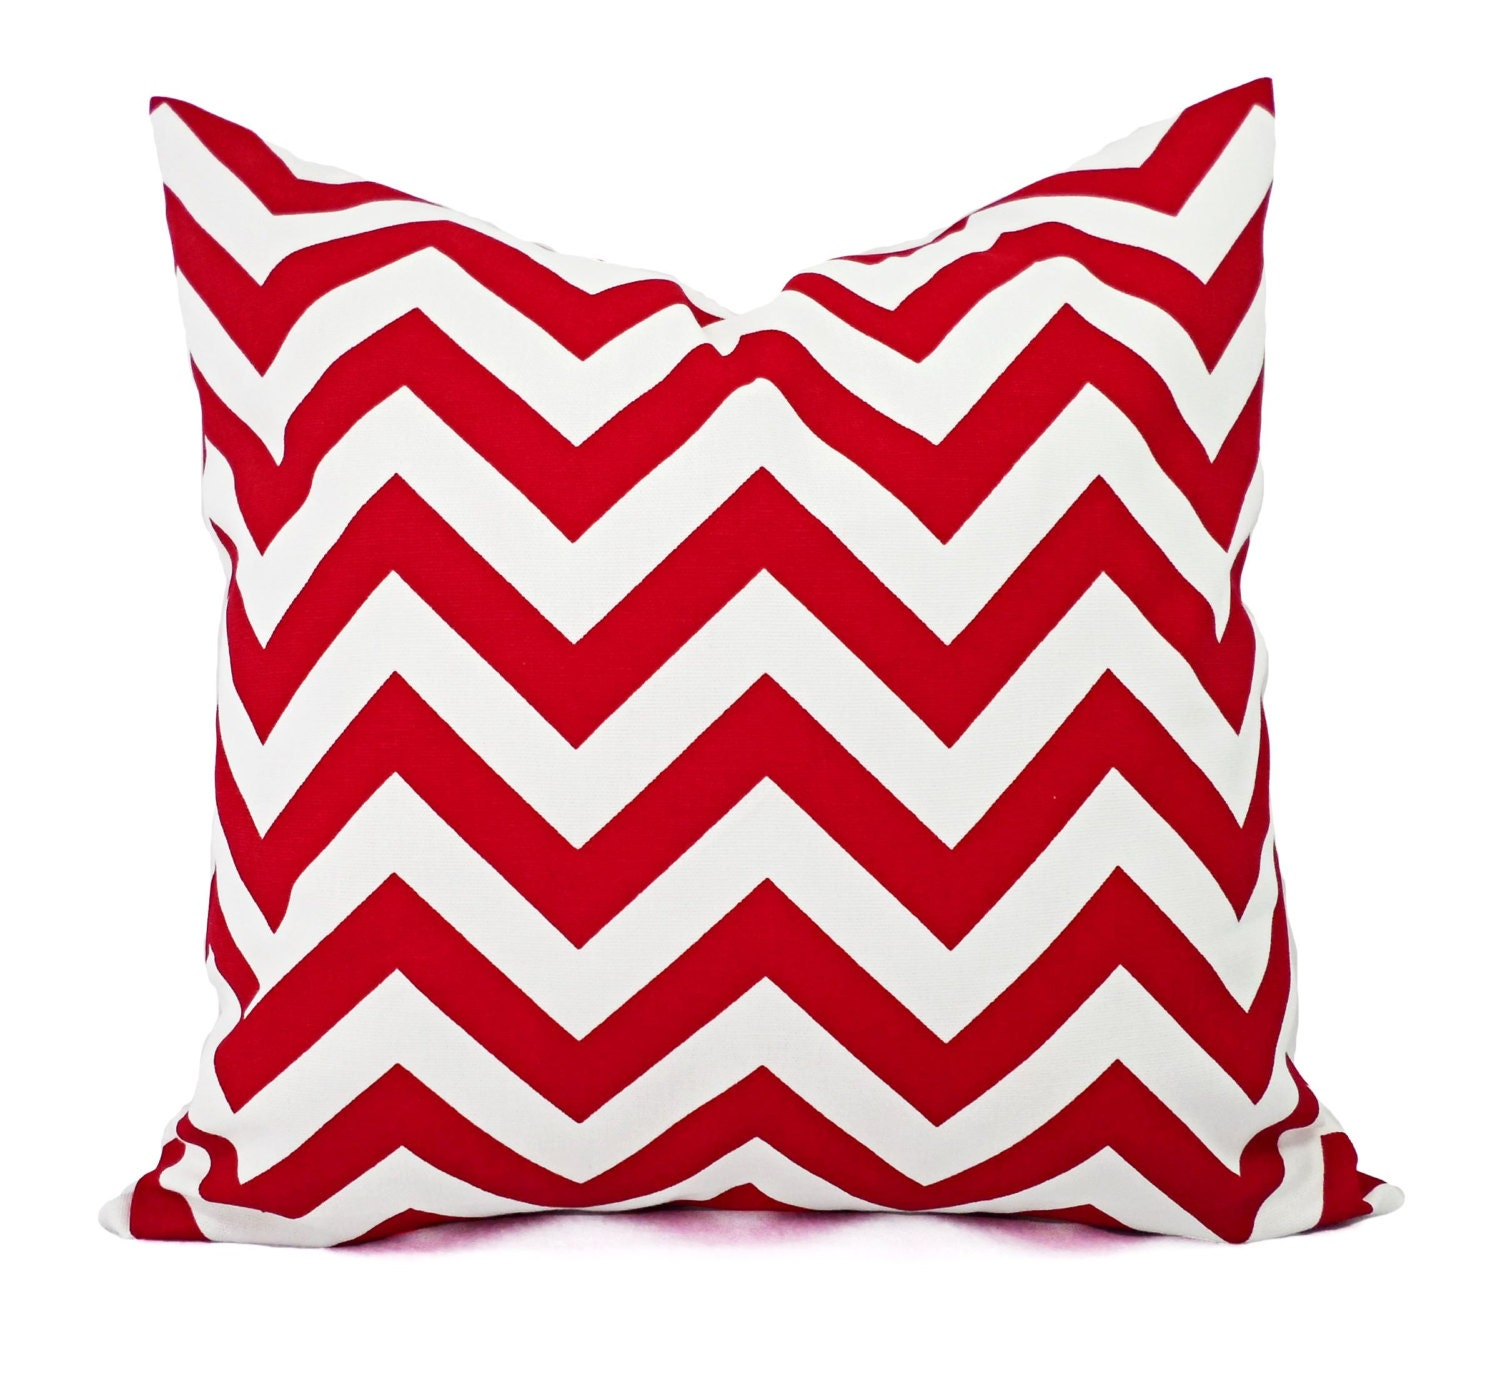 Two Chevron Pillow Covers Red and White Pillows Pillow